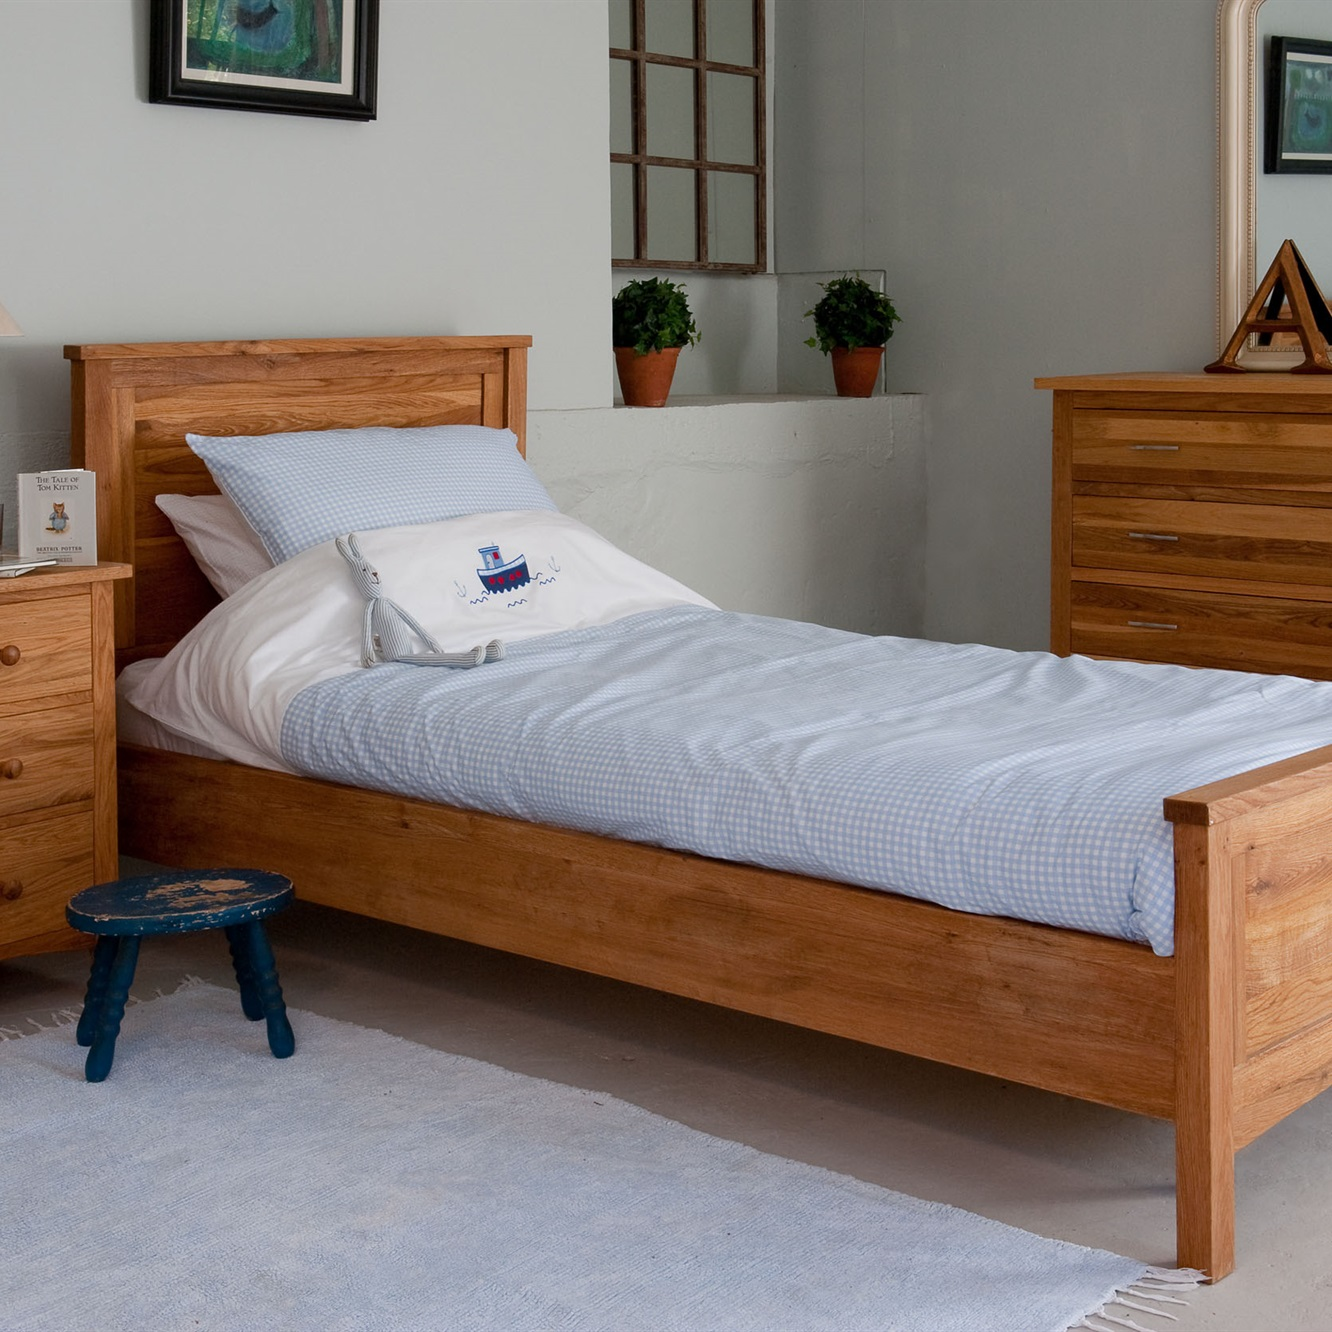 The New England bed in solid oak